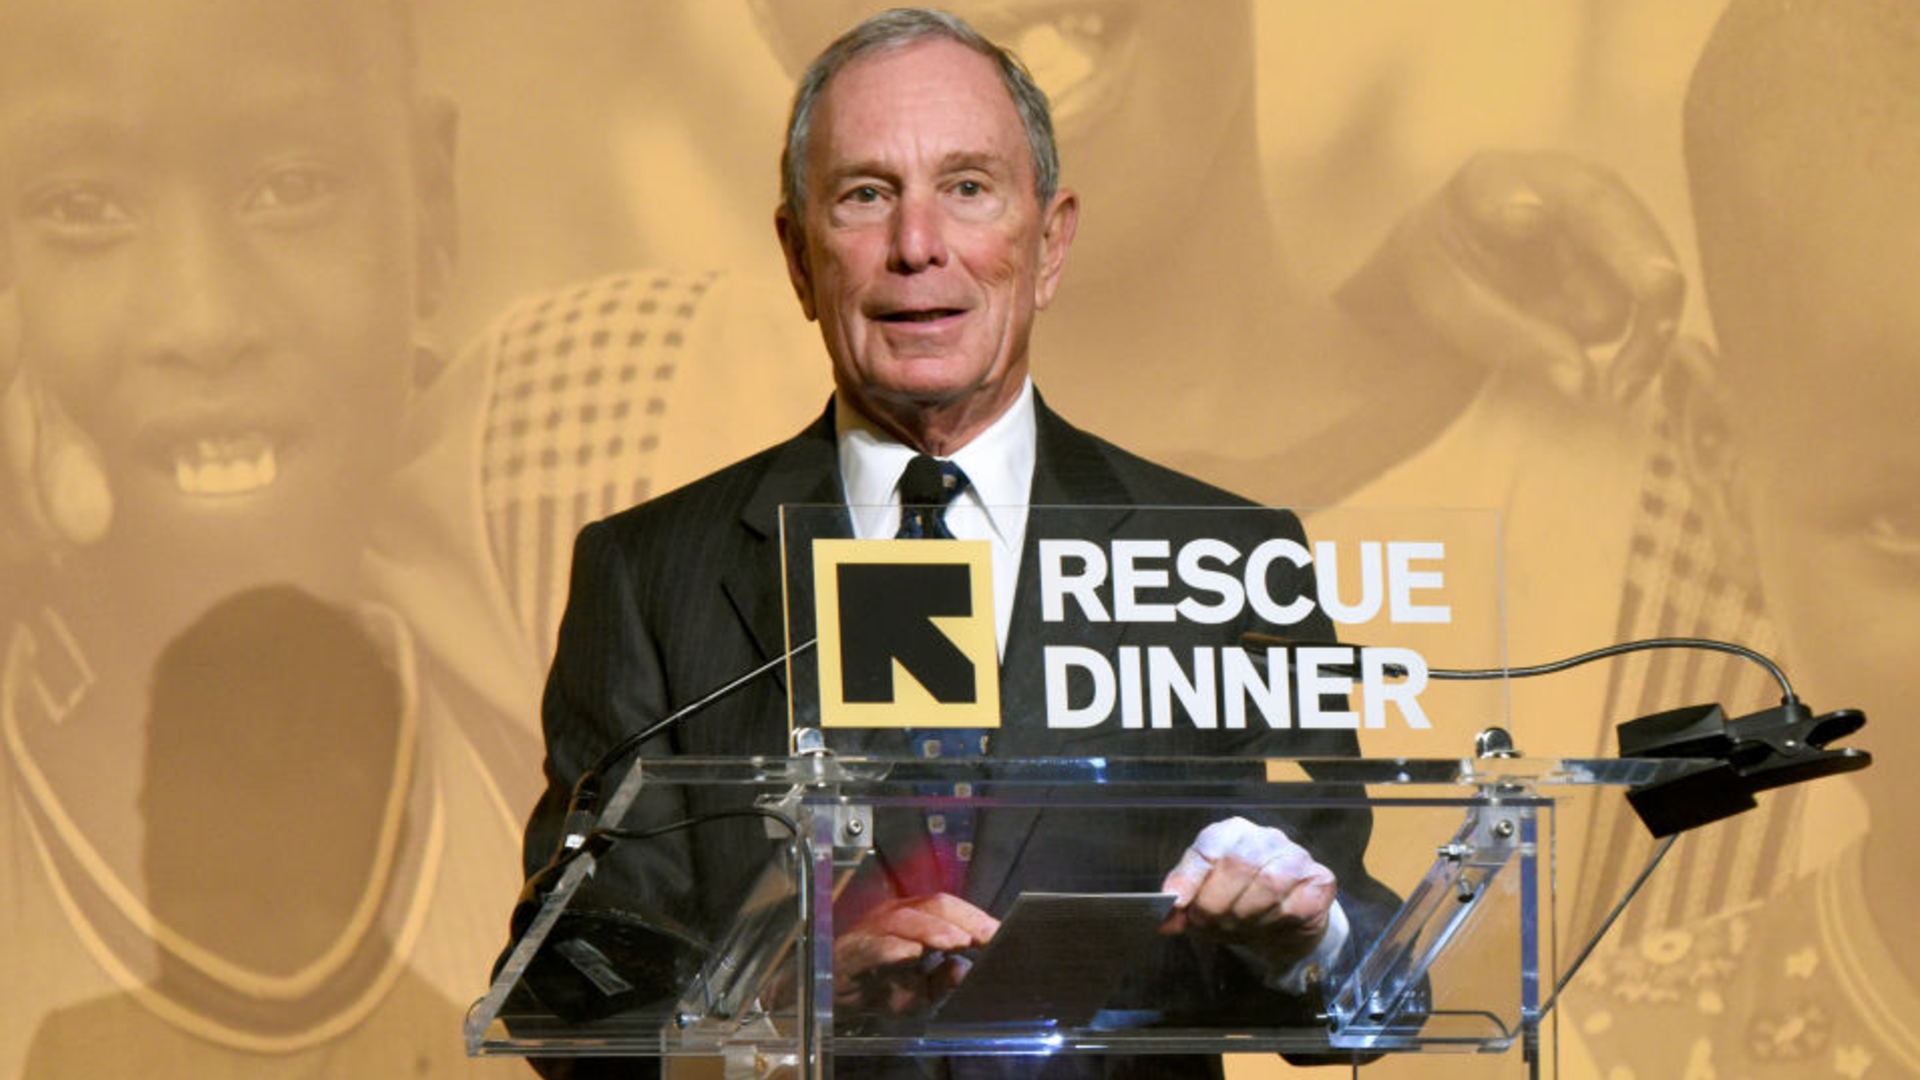 Michael Bloomberg make remarks at the podium at the IRC's Rescue Dinner on Nov. 2, 2017 in New York